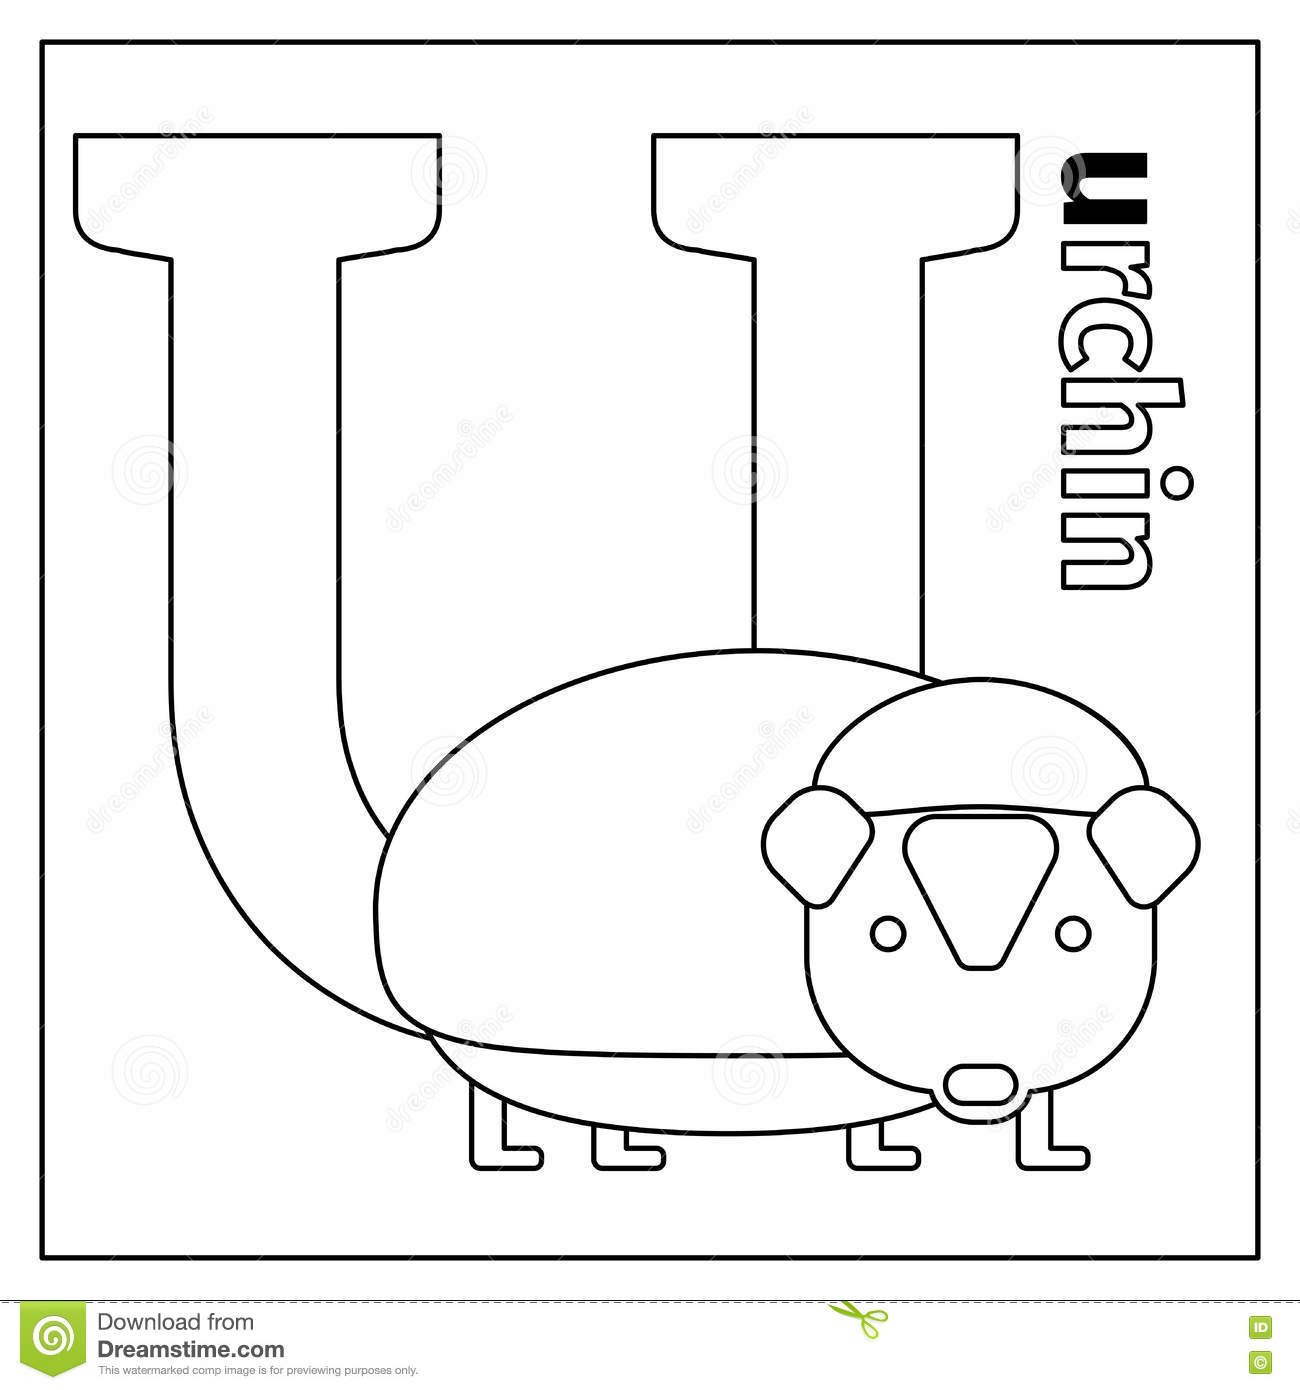 Royalty Free Vector Download Urchin Letter U Coloring Page